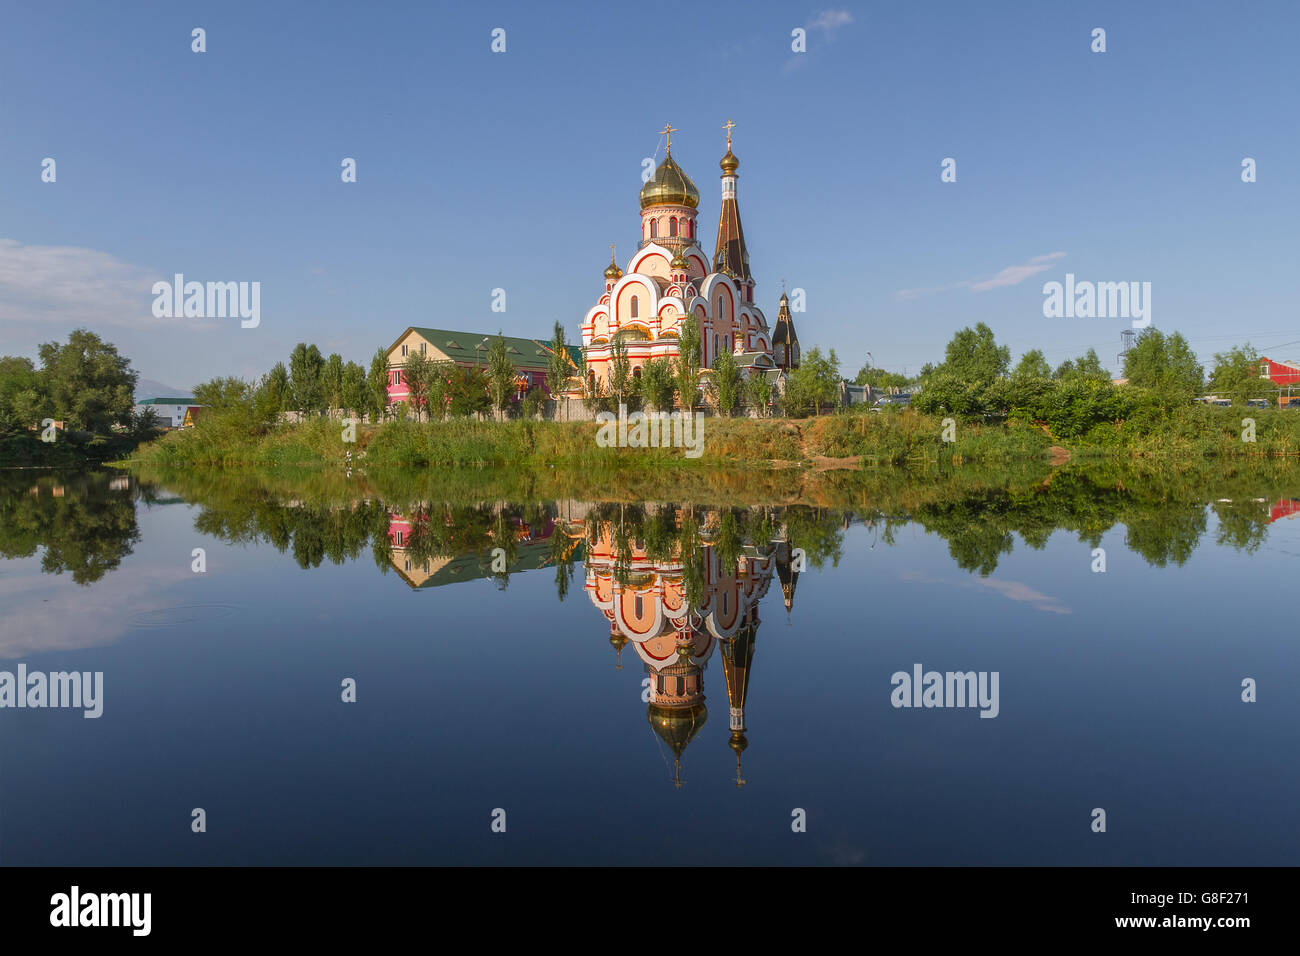 Reflections of a church in Almaty, Kazakhstan. Stock Photo